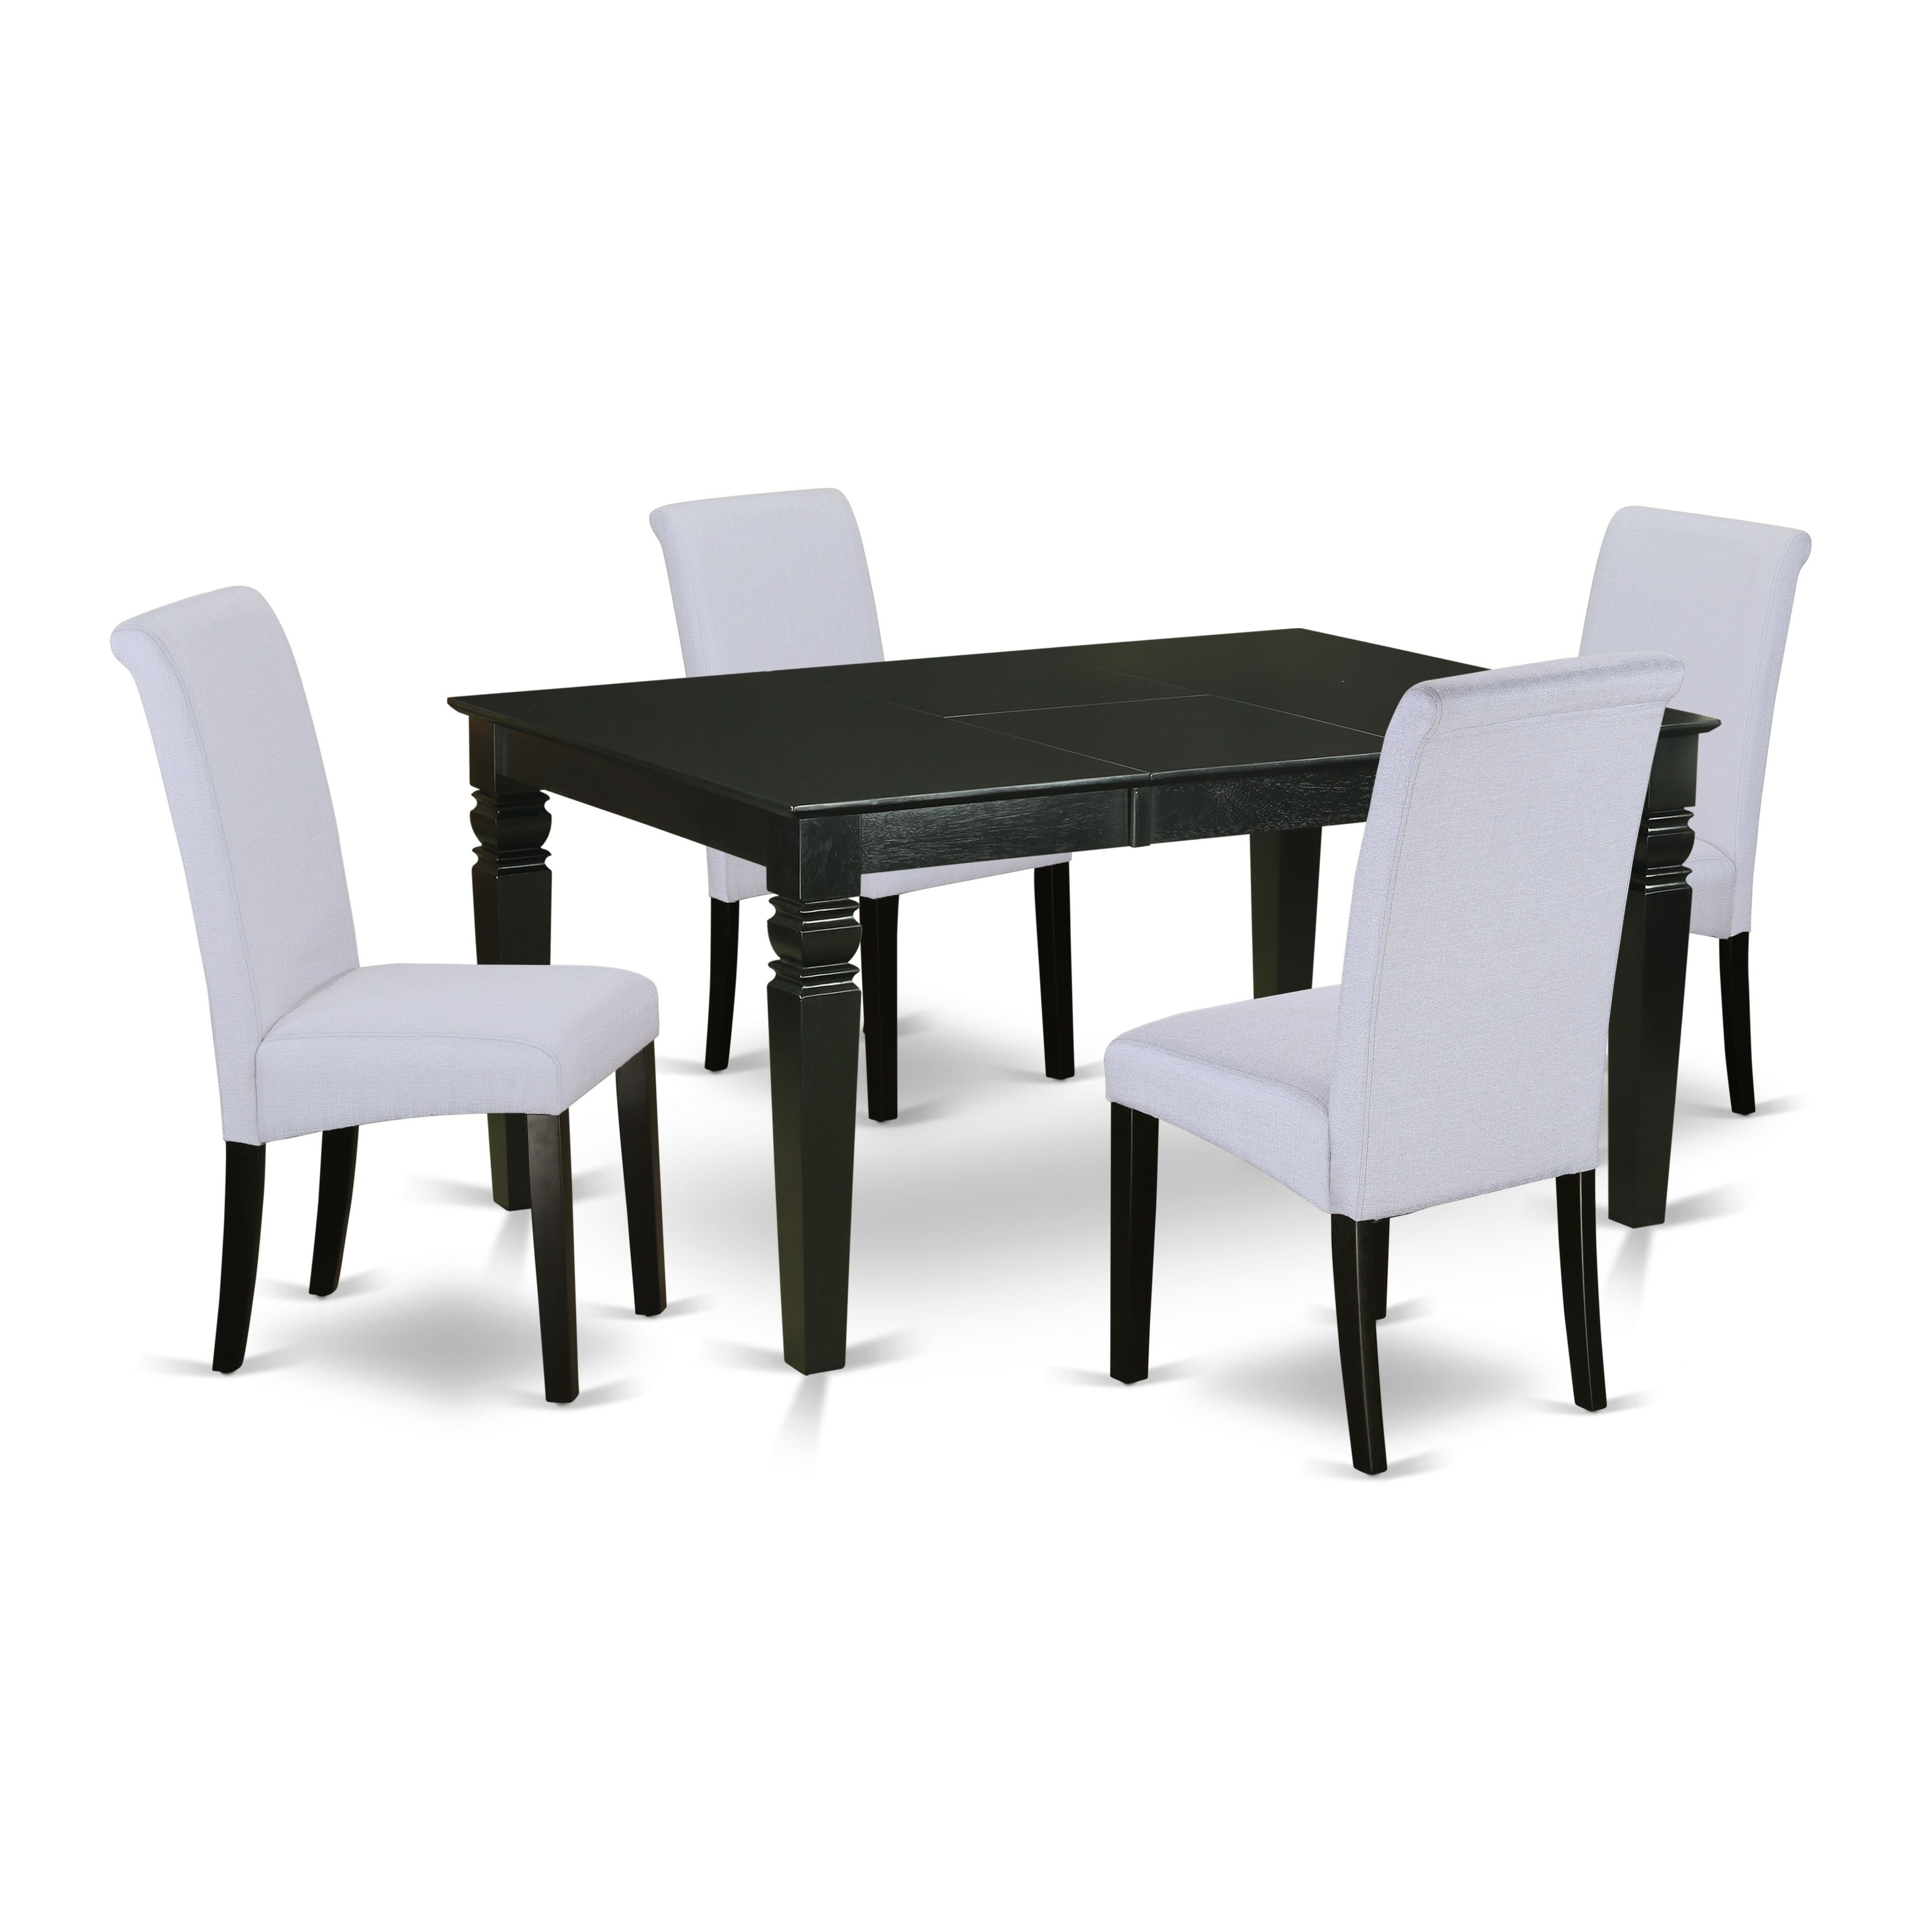 Stupendous 5Pc Rectangular Kitchen Table With Elegant Parson Chairs Onthecornerstone Fun Painted Chair Ideas Images Onthecornerstoneorg